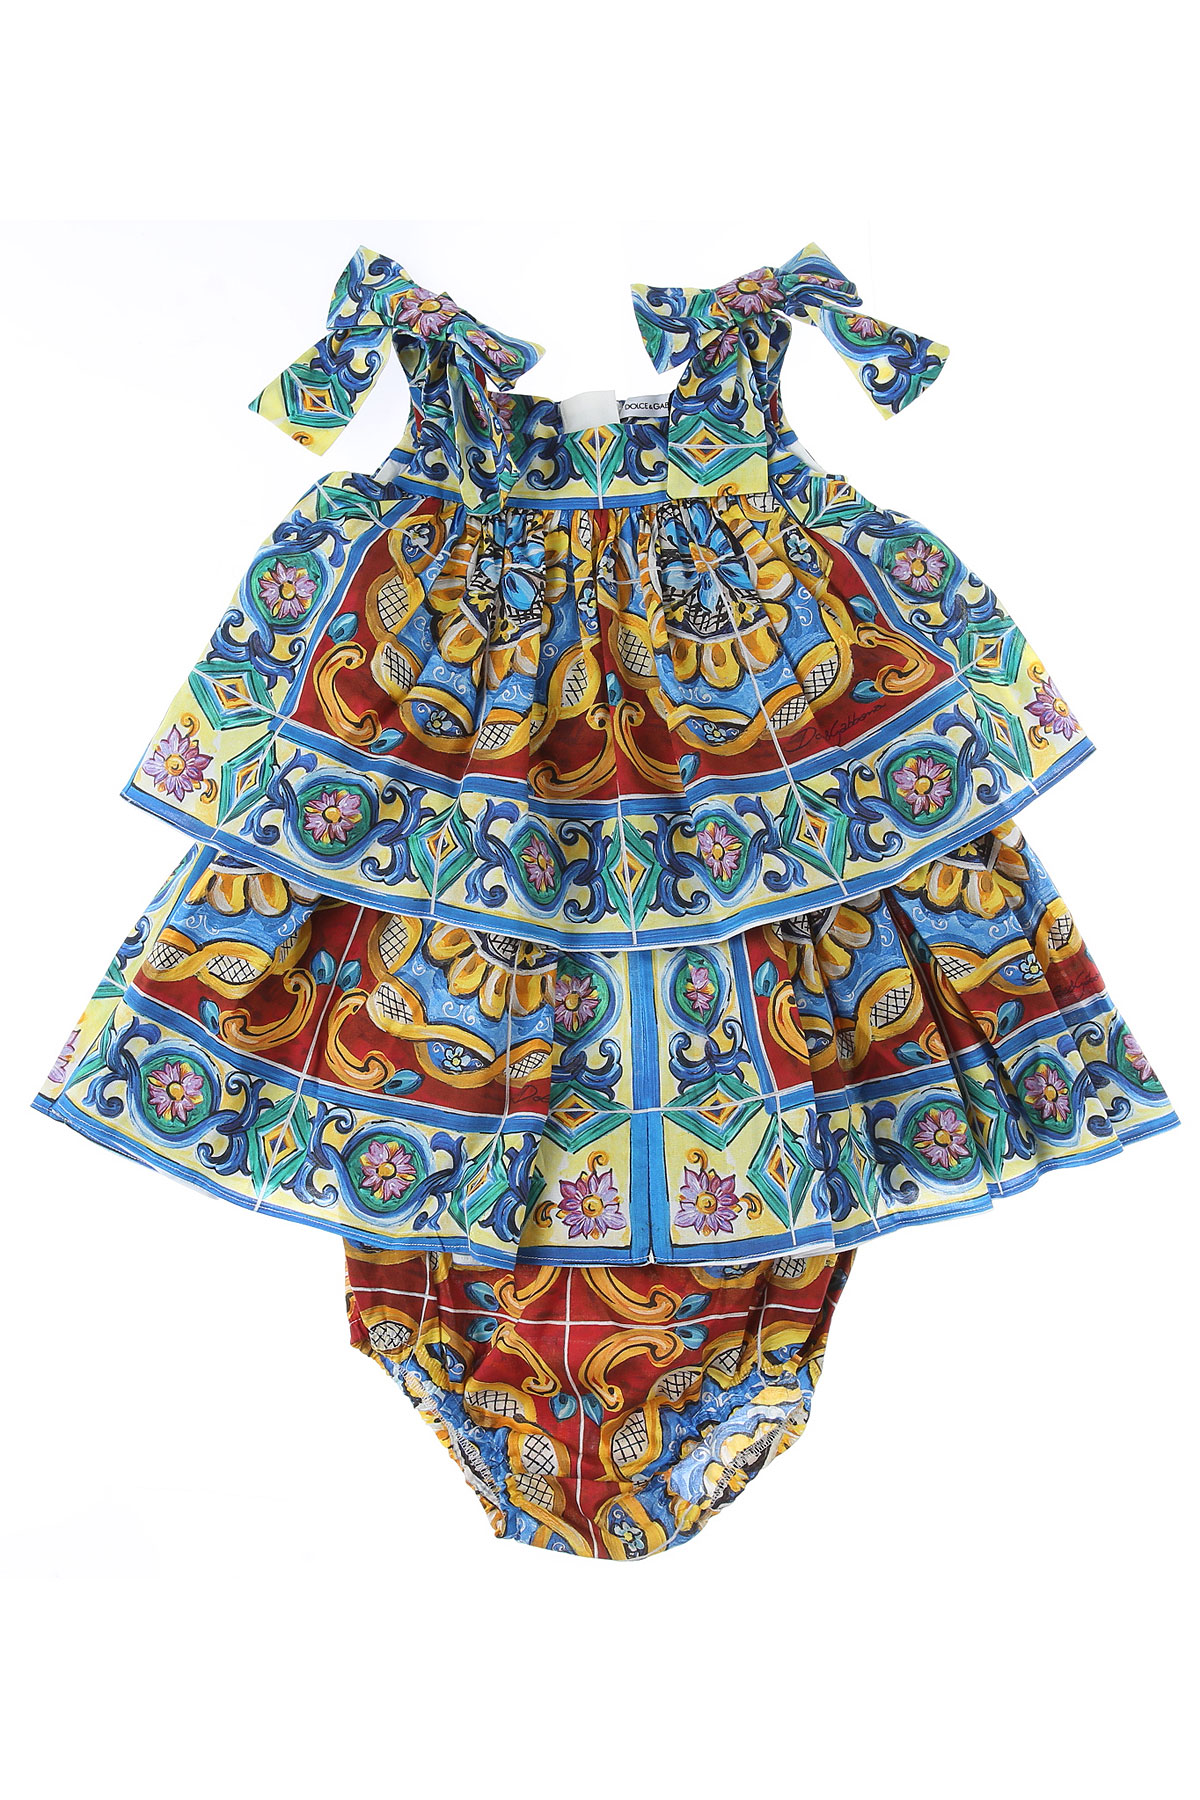 Dolce & Gabbana Baby Dress for Girls On Sale in Outlet, Multicolor, Cotton, 2019, 12M 18M 24M 9M